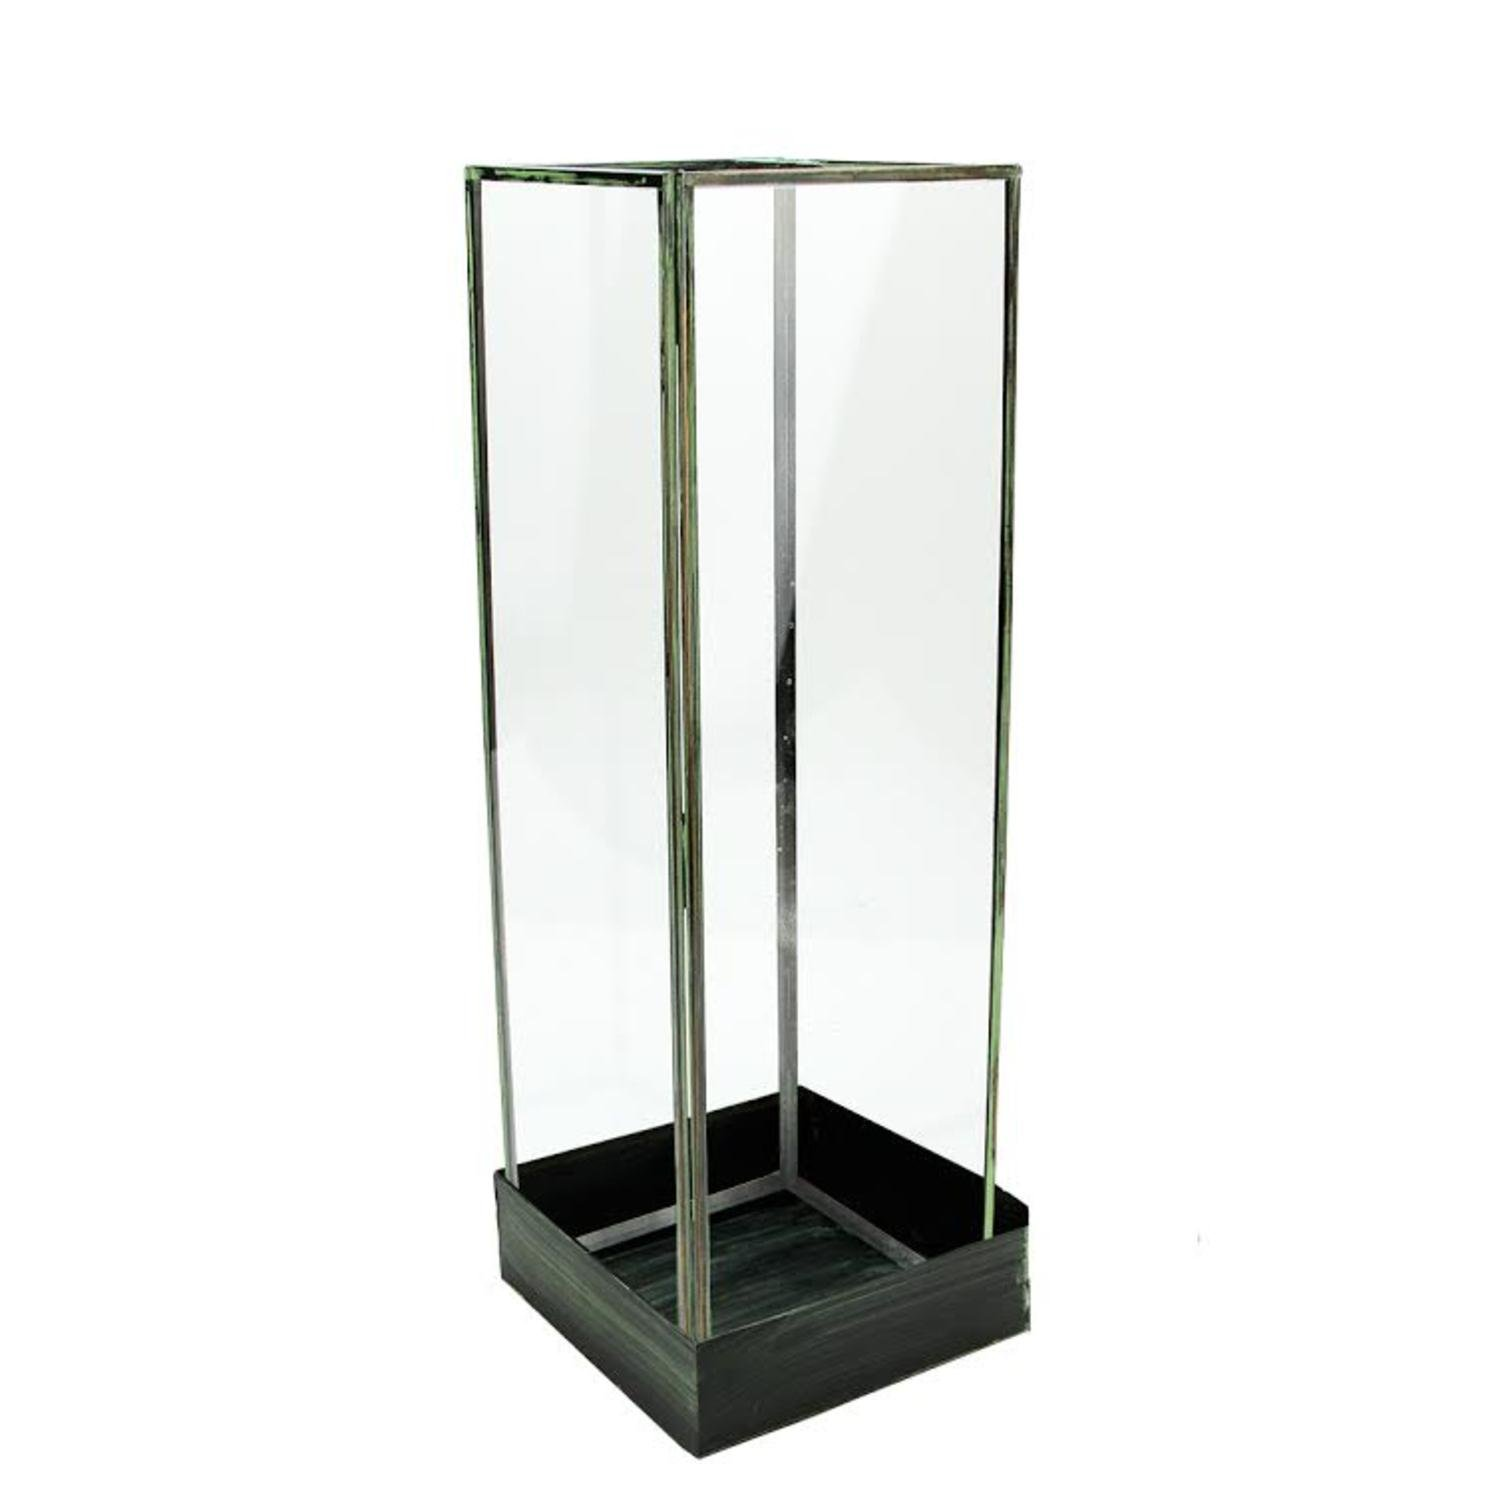 18.25'' Rectangular Table Top Glass Terrarium Tower with Green Metal Base by CC Home Furnishings